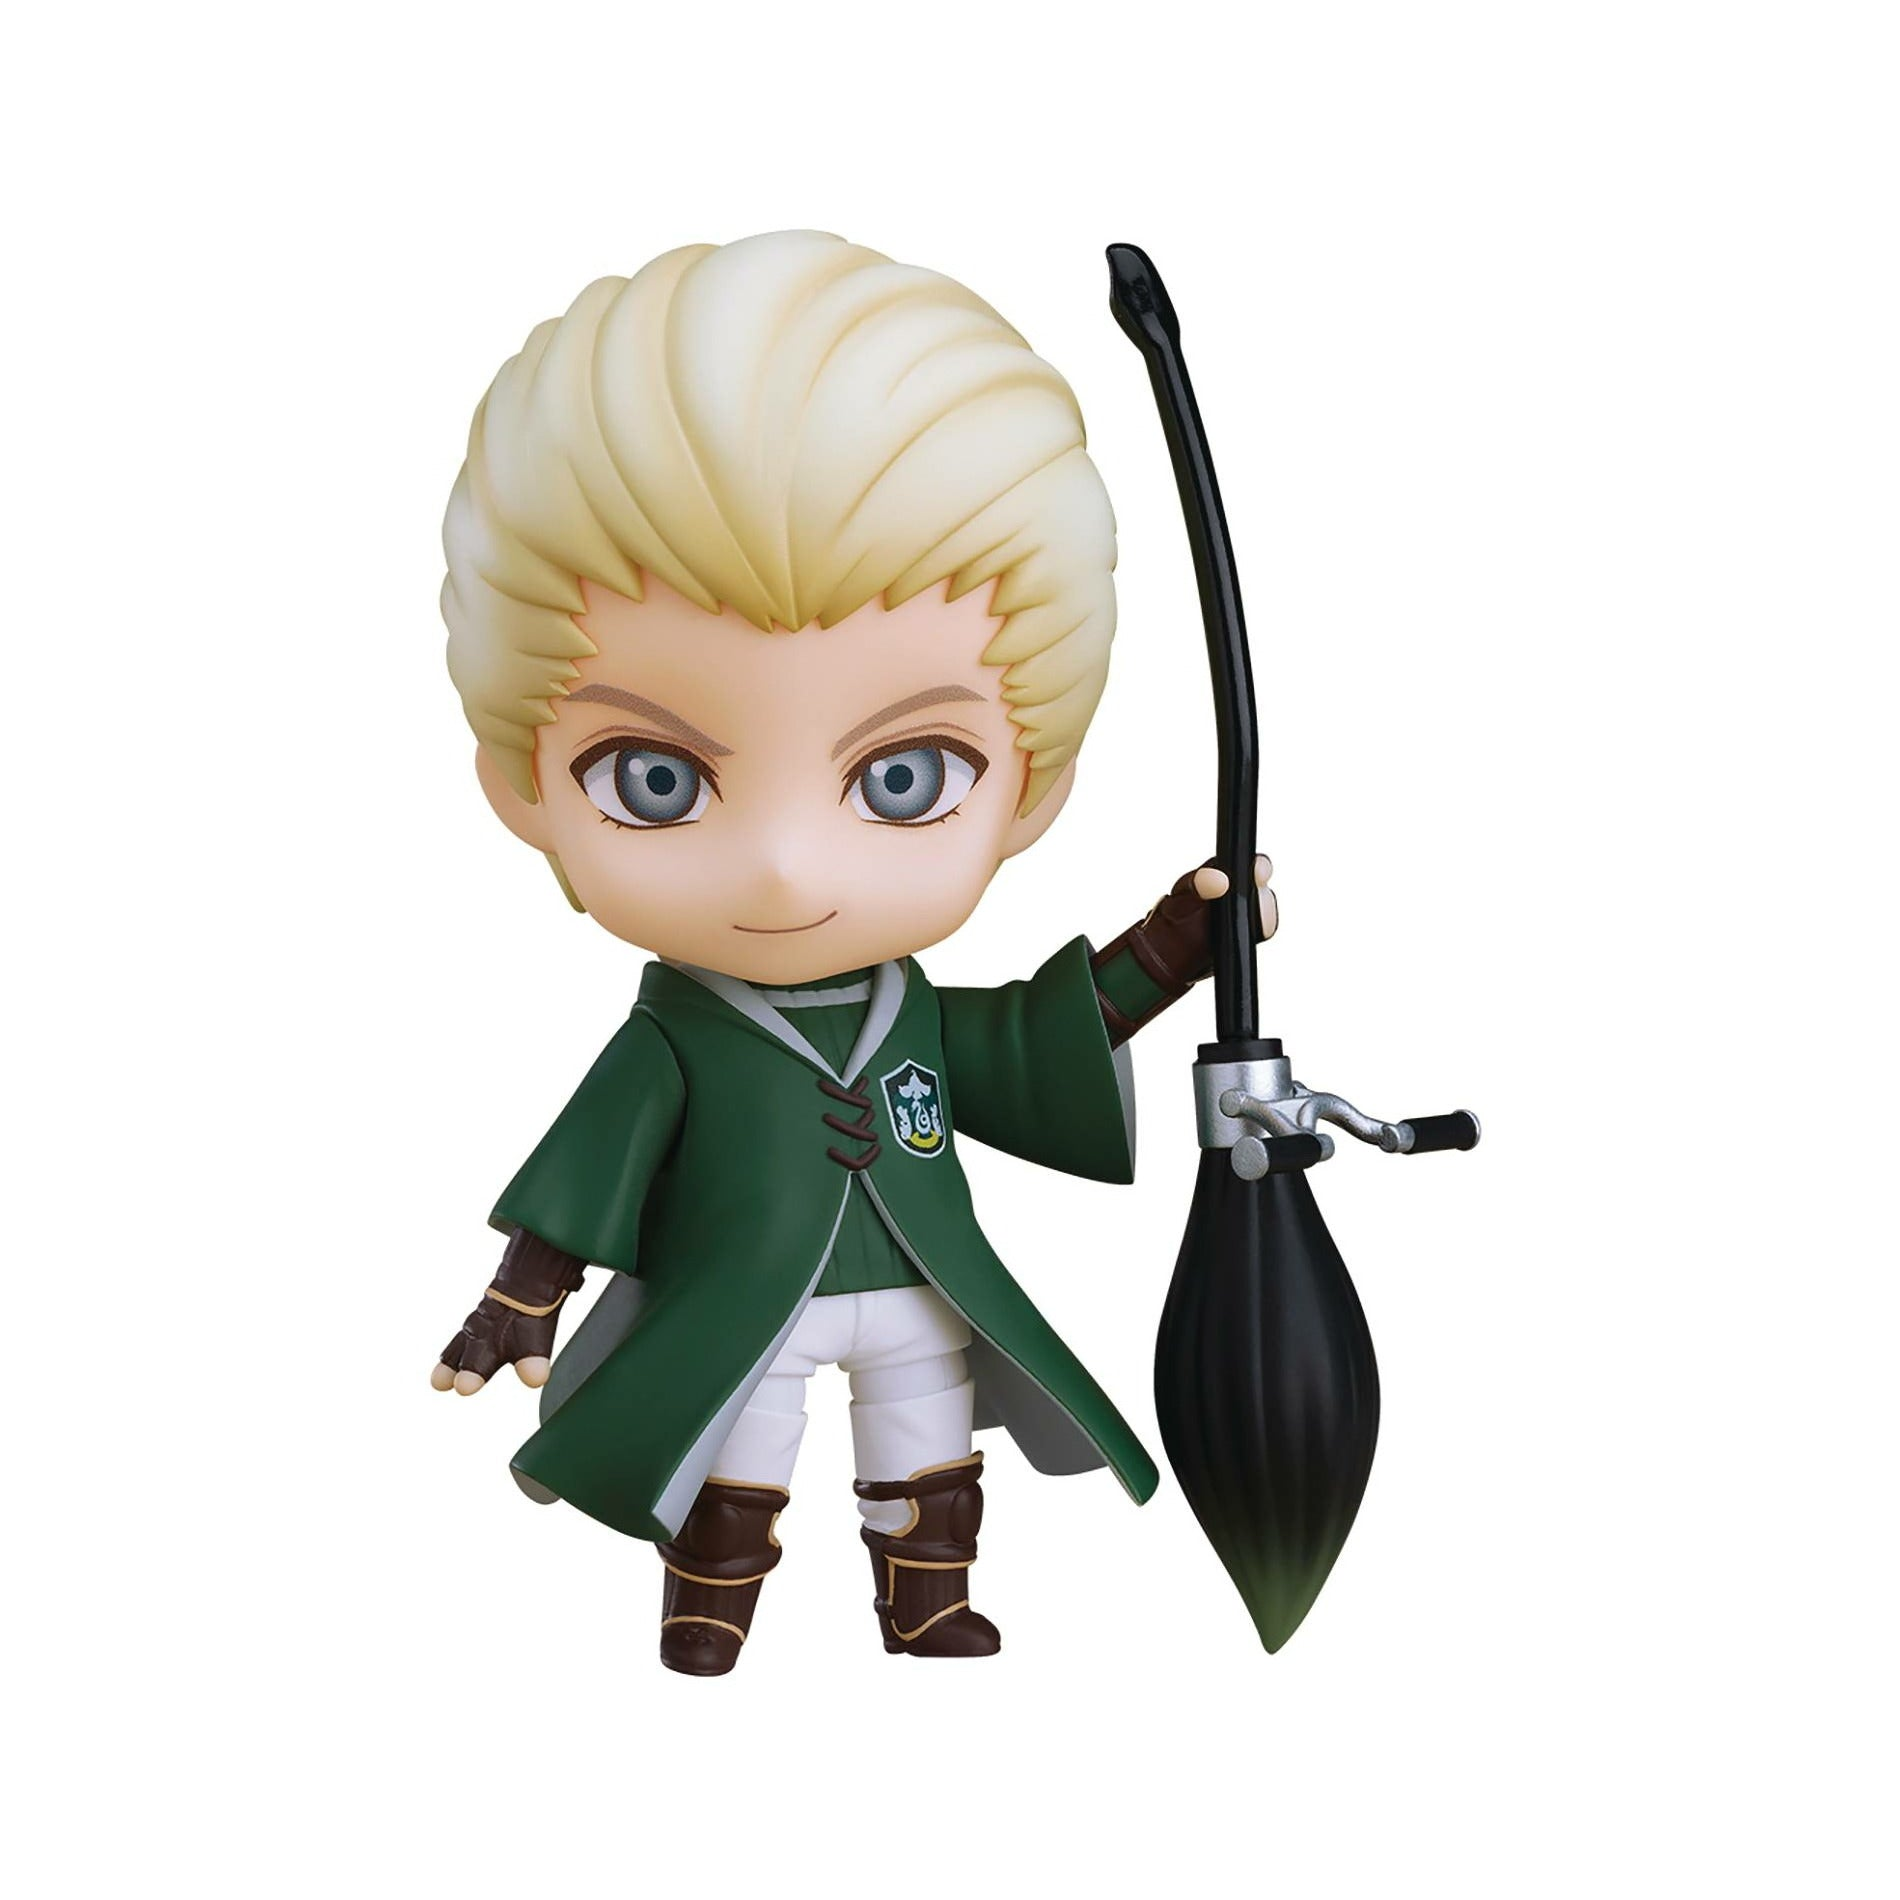 Harry Potter Draco Malfoy Nendoroid Quidditch Ver Action Figure